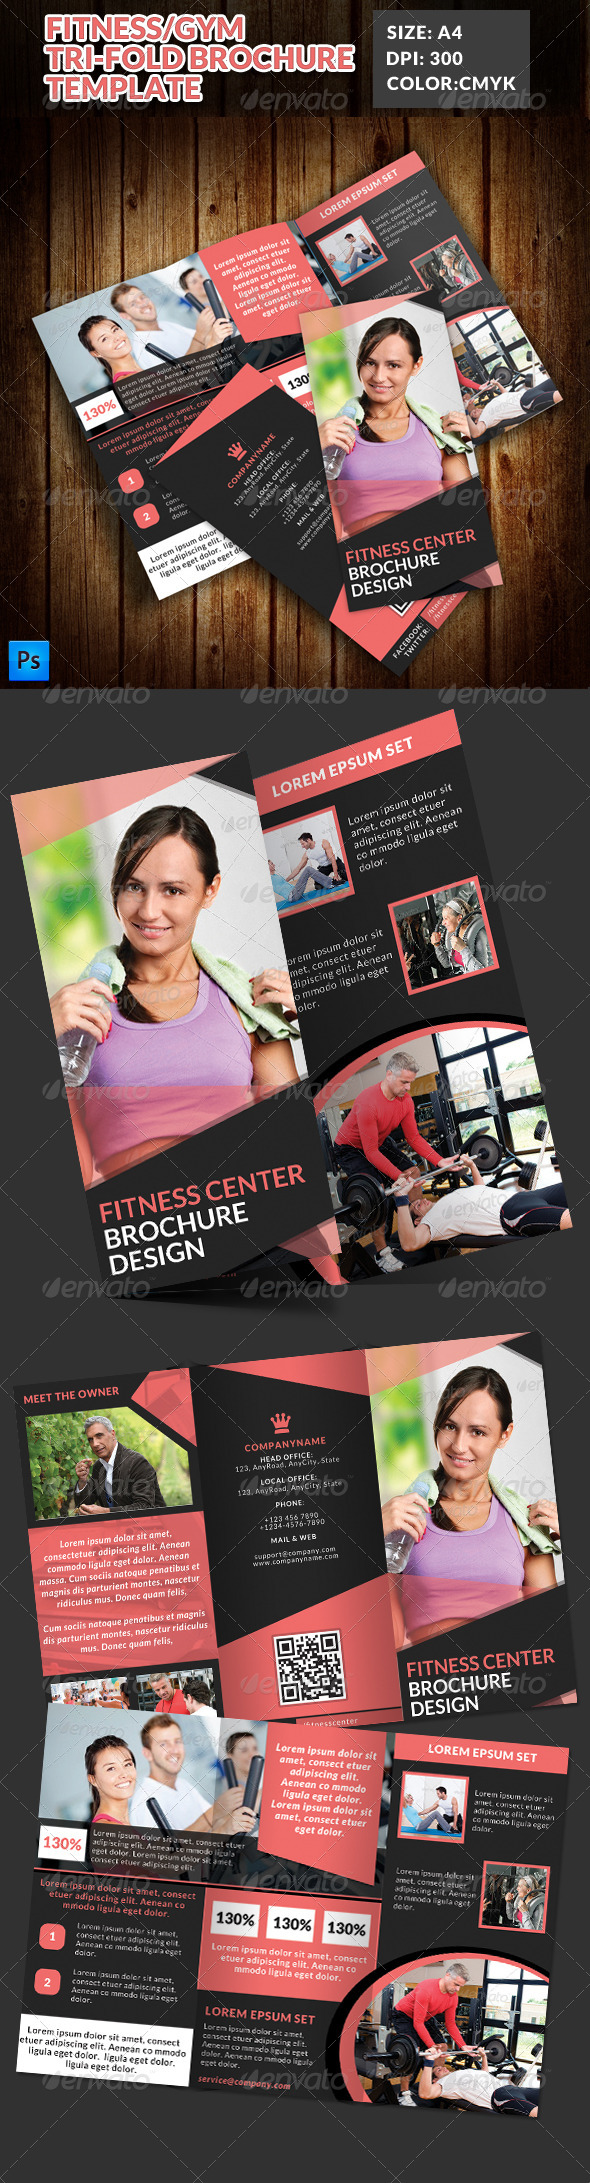 Fitness Gym Tri-Fold Brochures Template